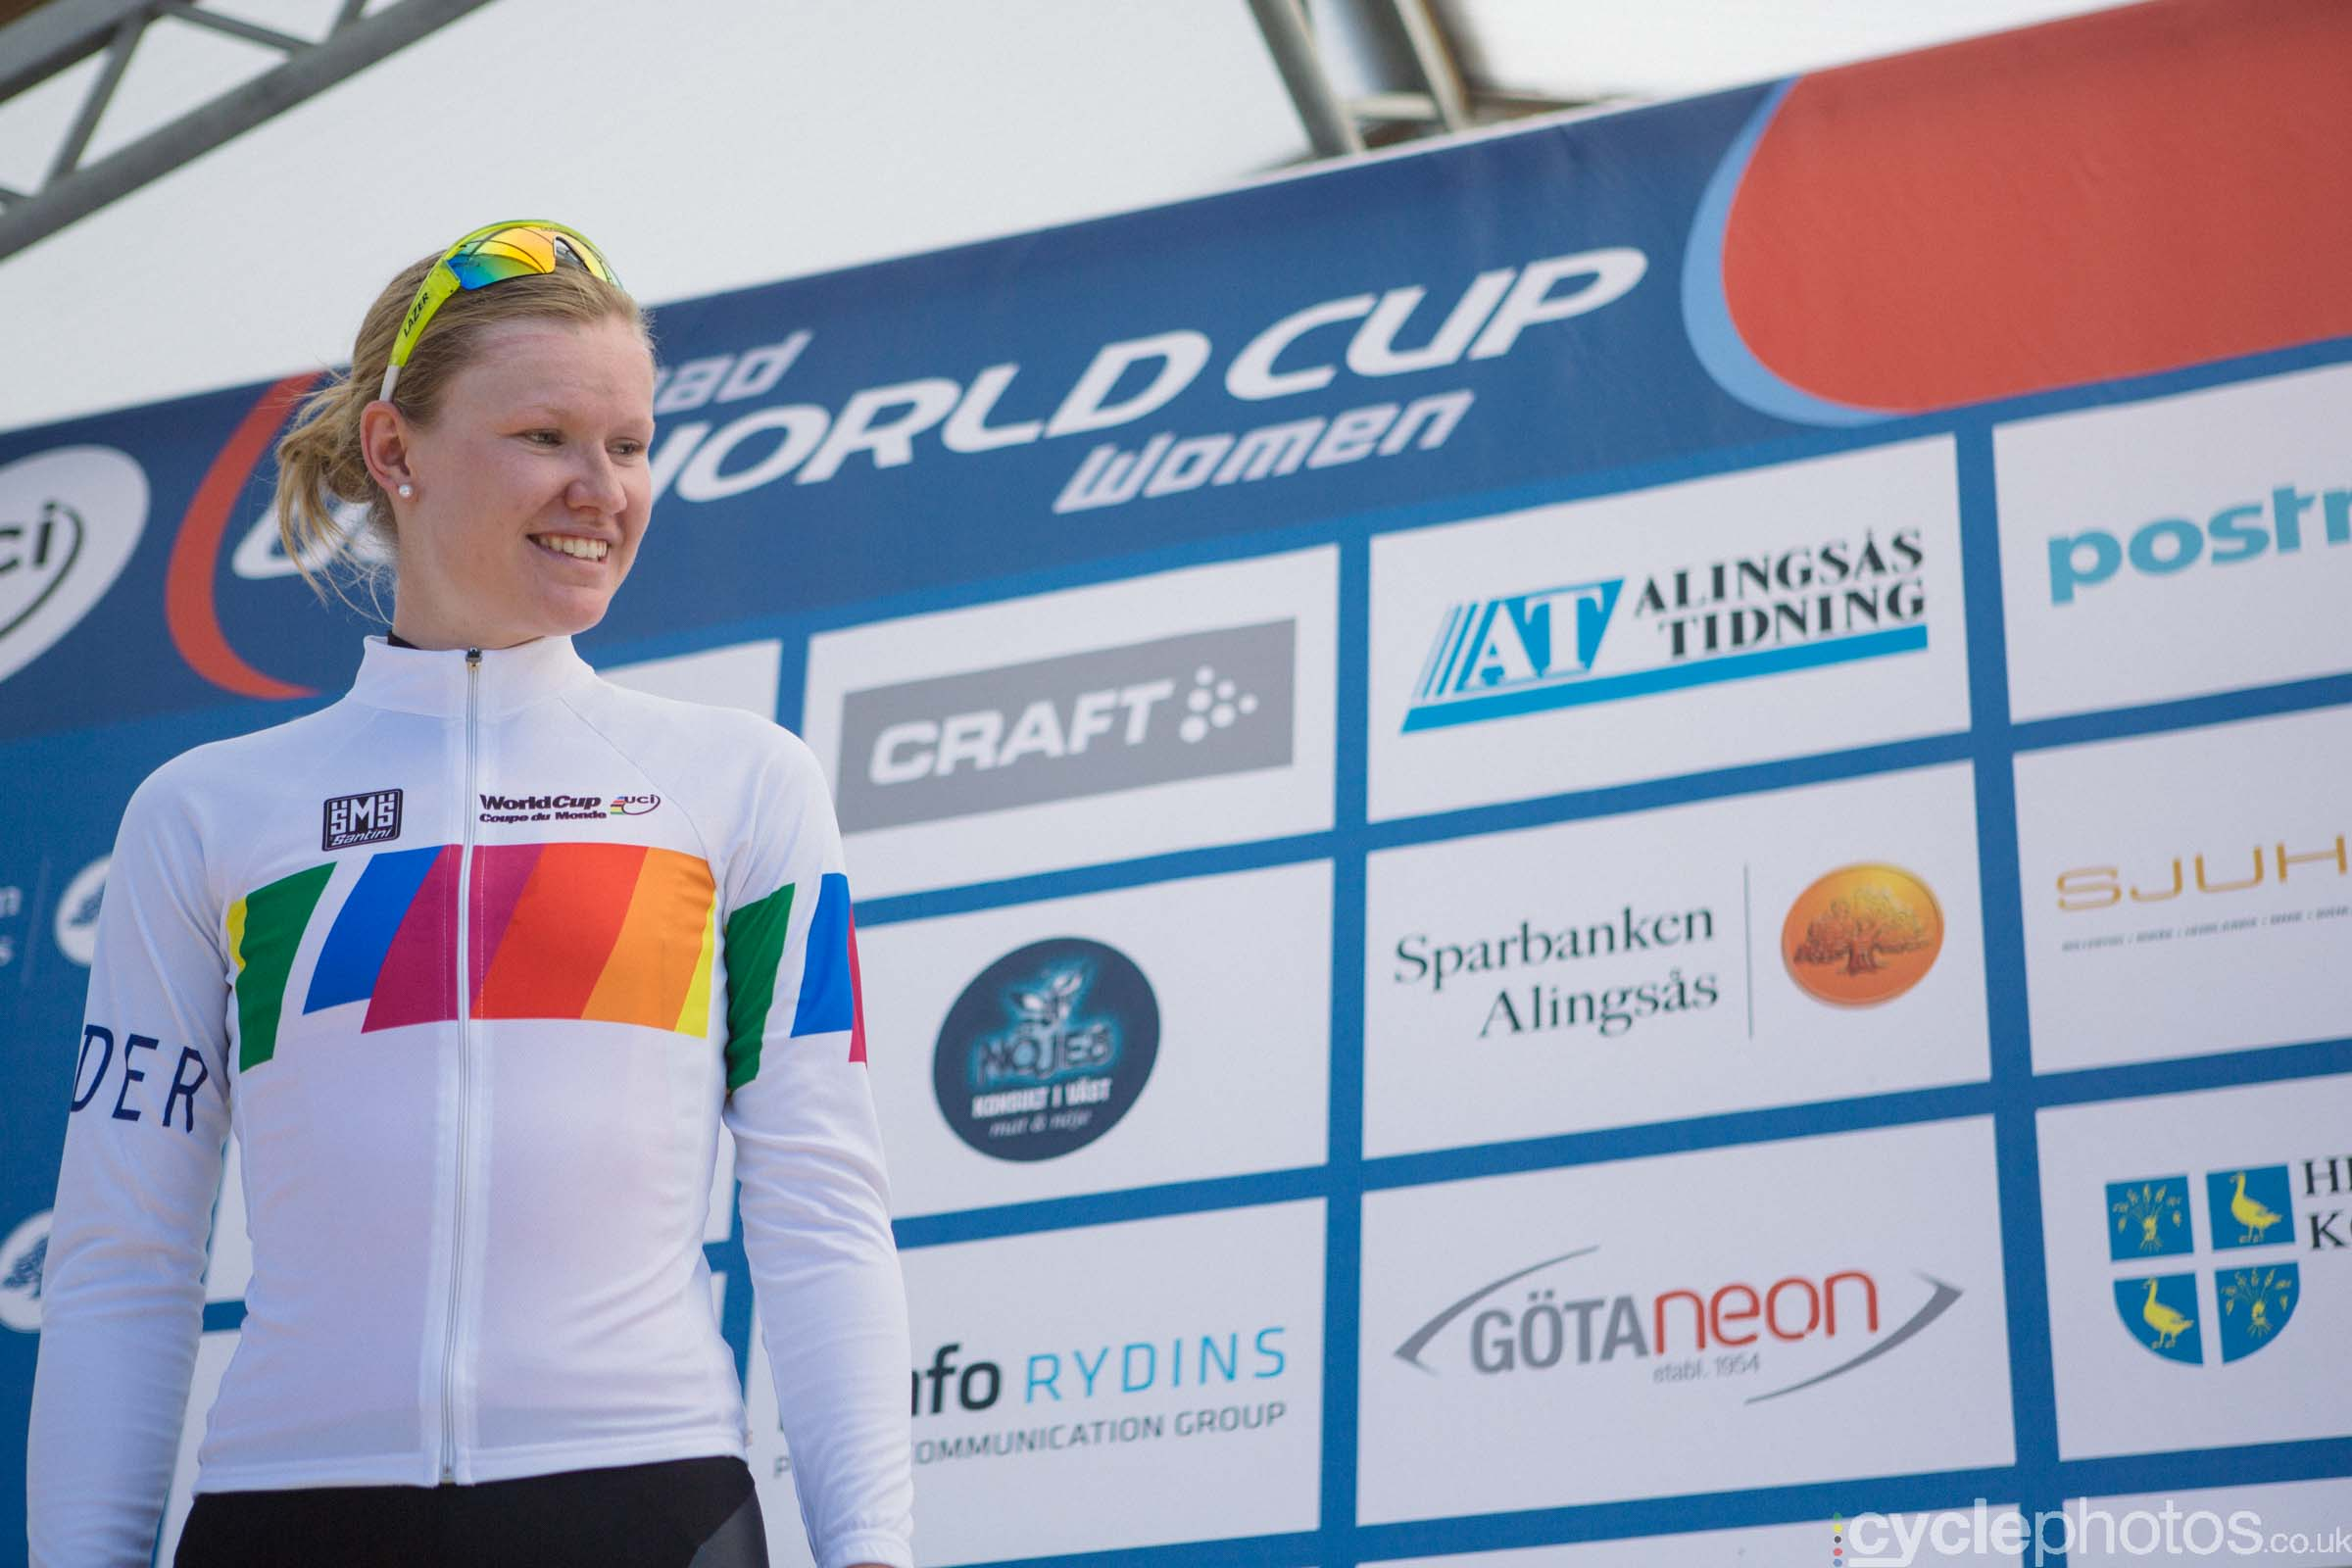 The new leader of the World Cup, Jolien D'Hoore